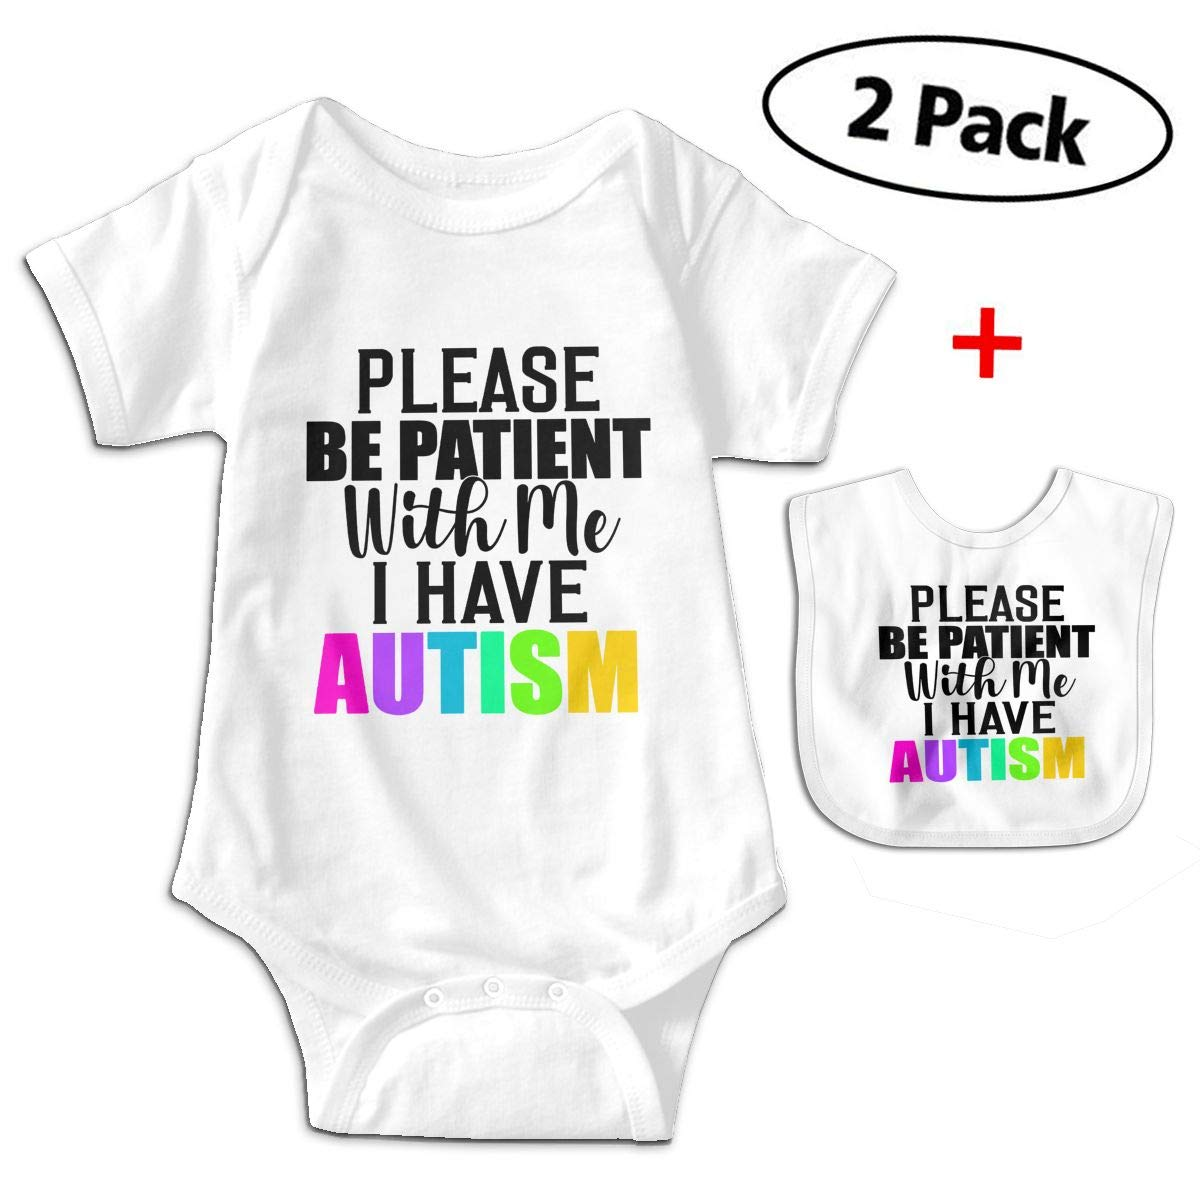 KAYERDELLE Be Patient with Me I Have Autism Babys Kids Short Sleeve Baby Climbing Clothes for 3-24 Months and Baby Bib